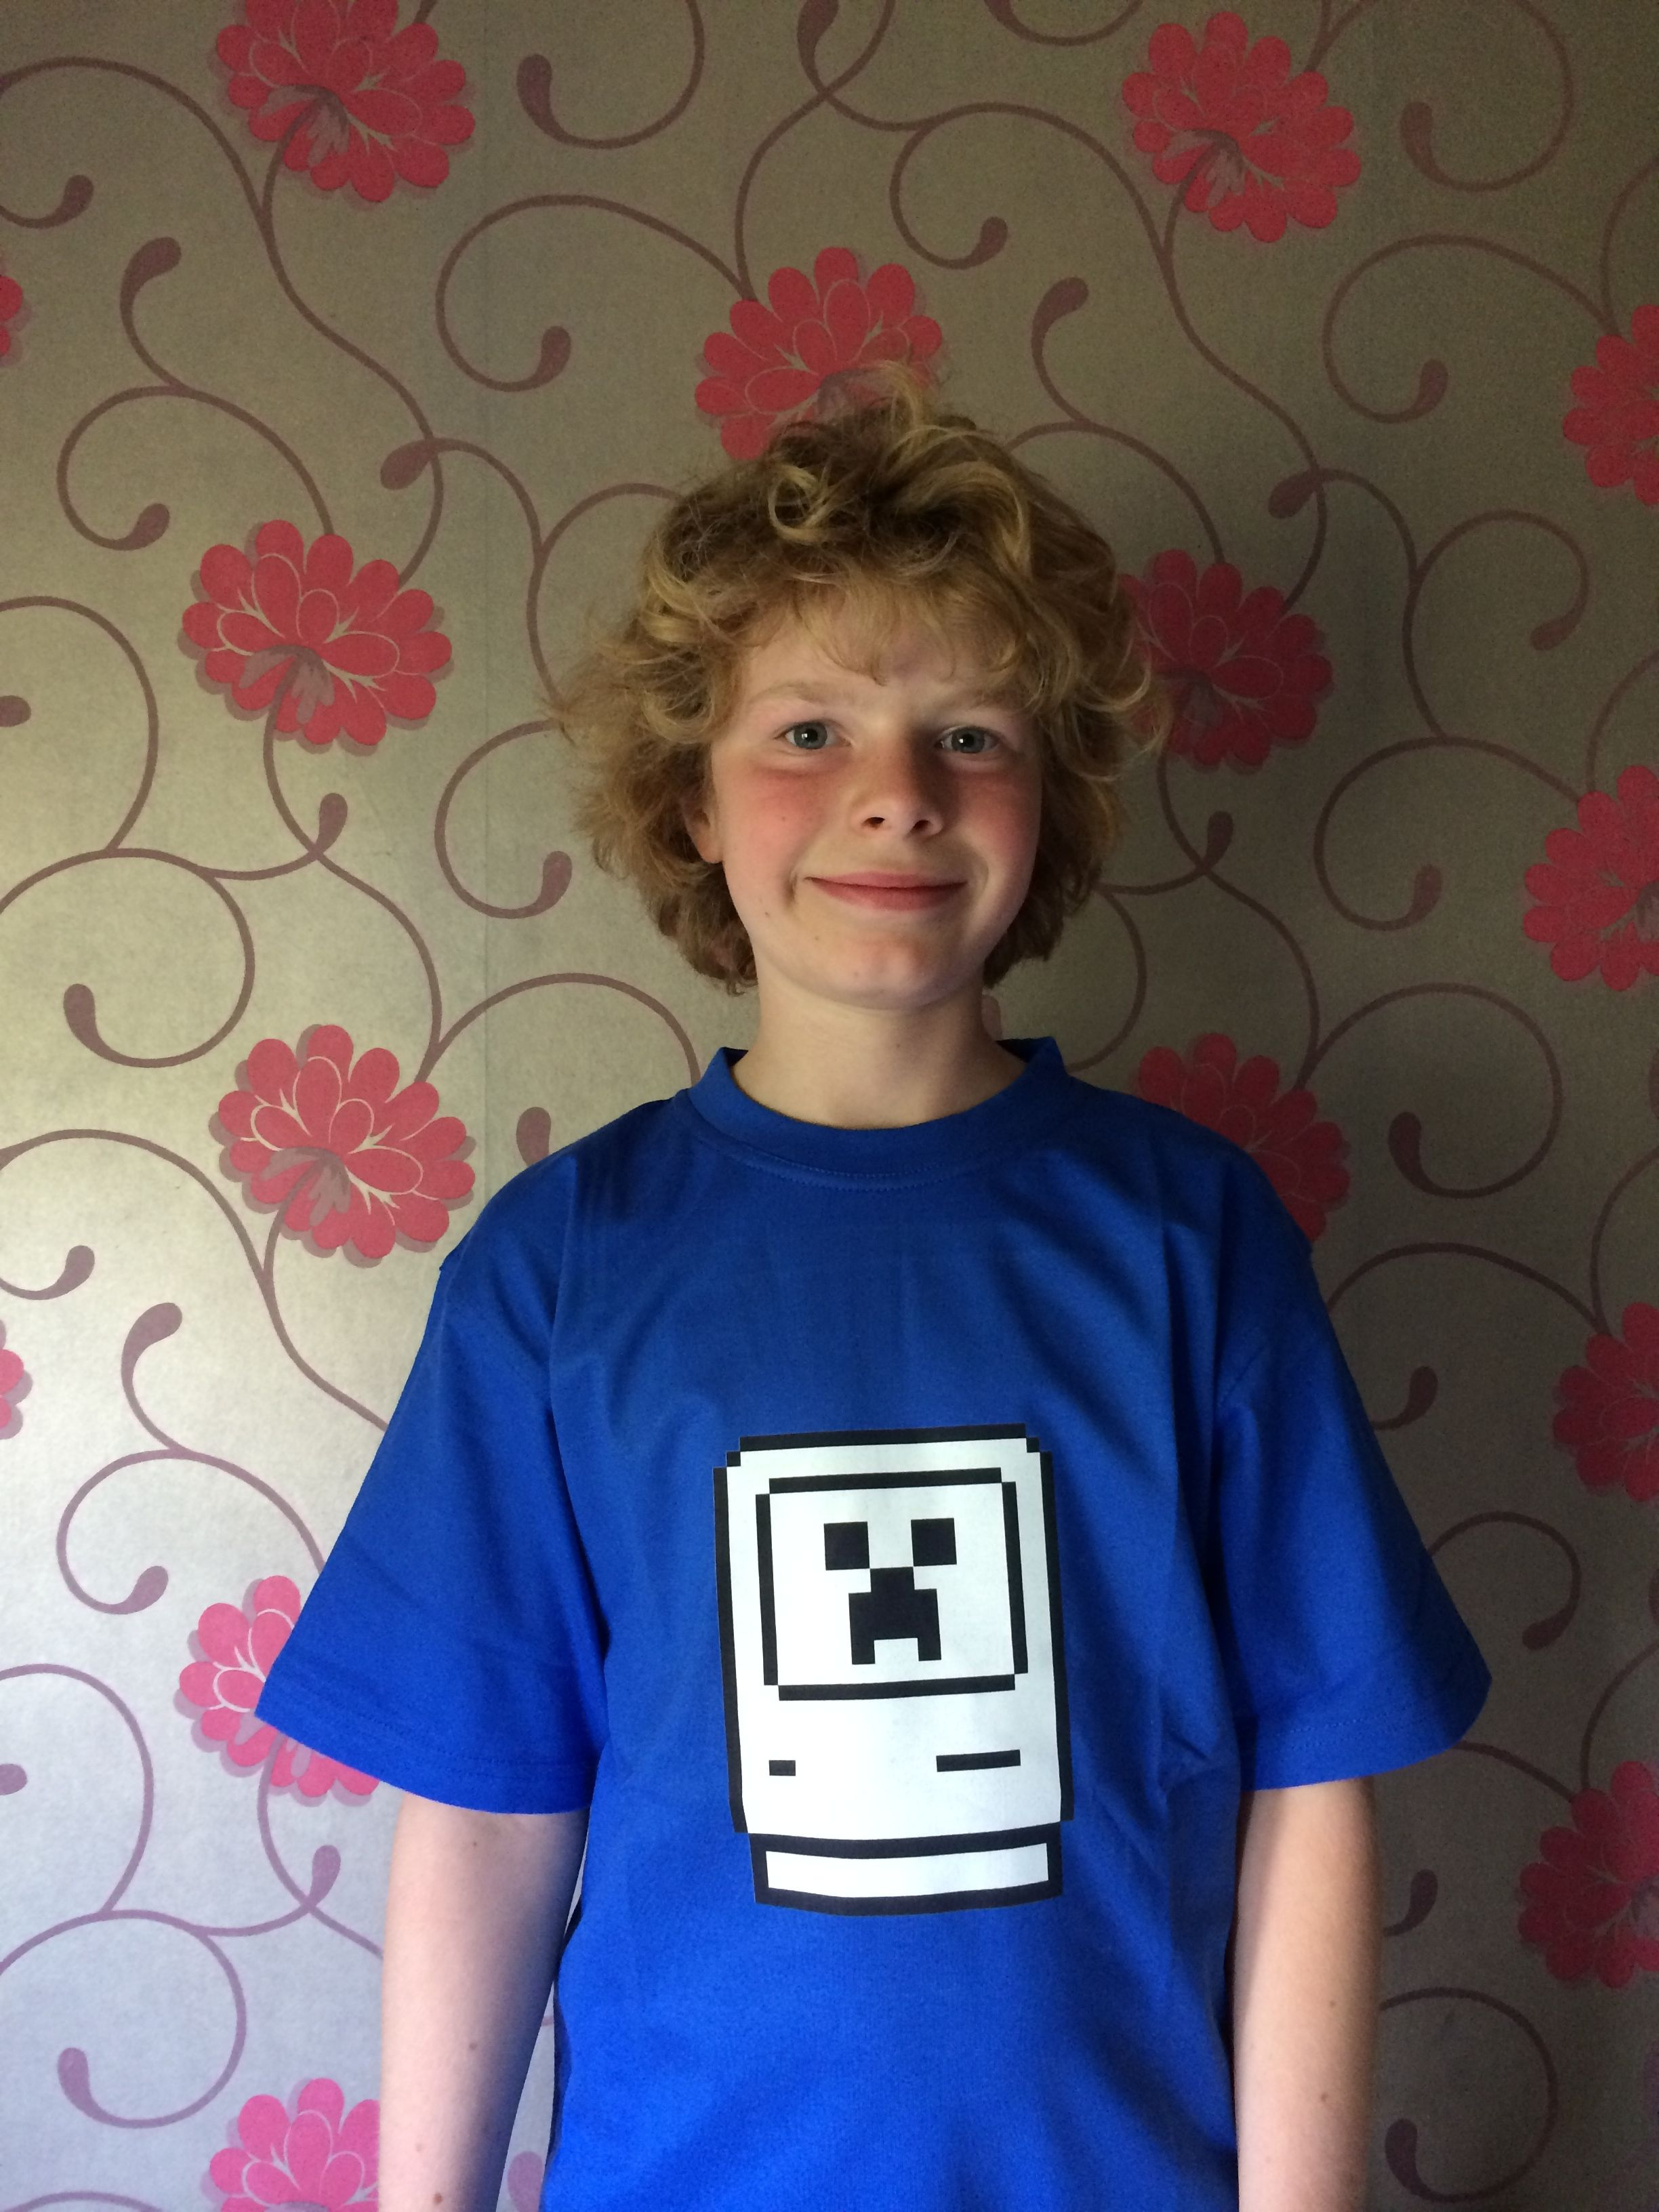 Design t shirt on mac - Minecraft Creeper Mac T Shirt Macminecraft